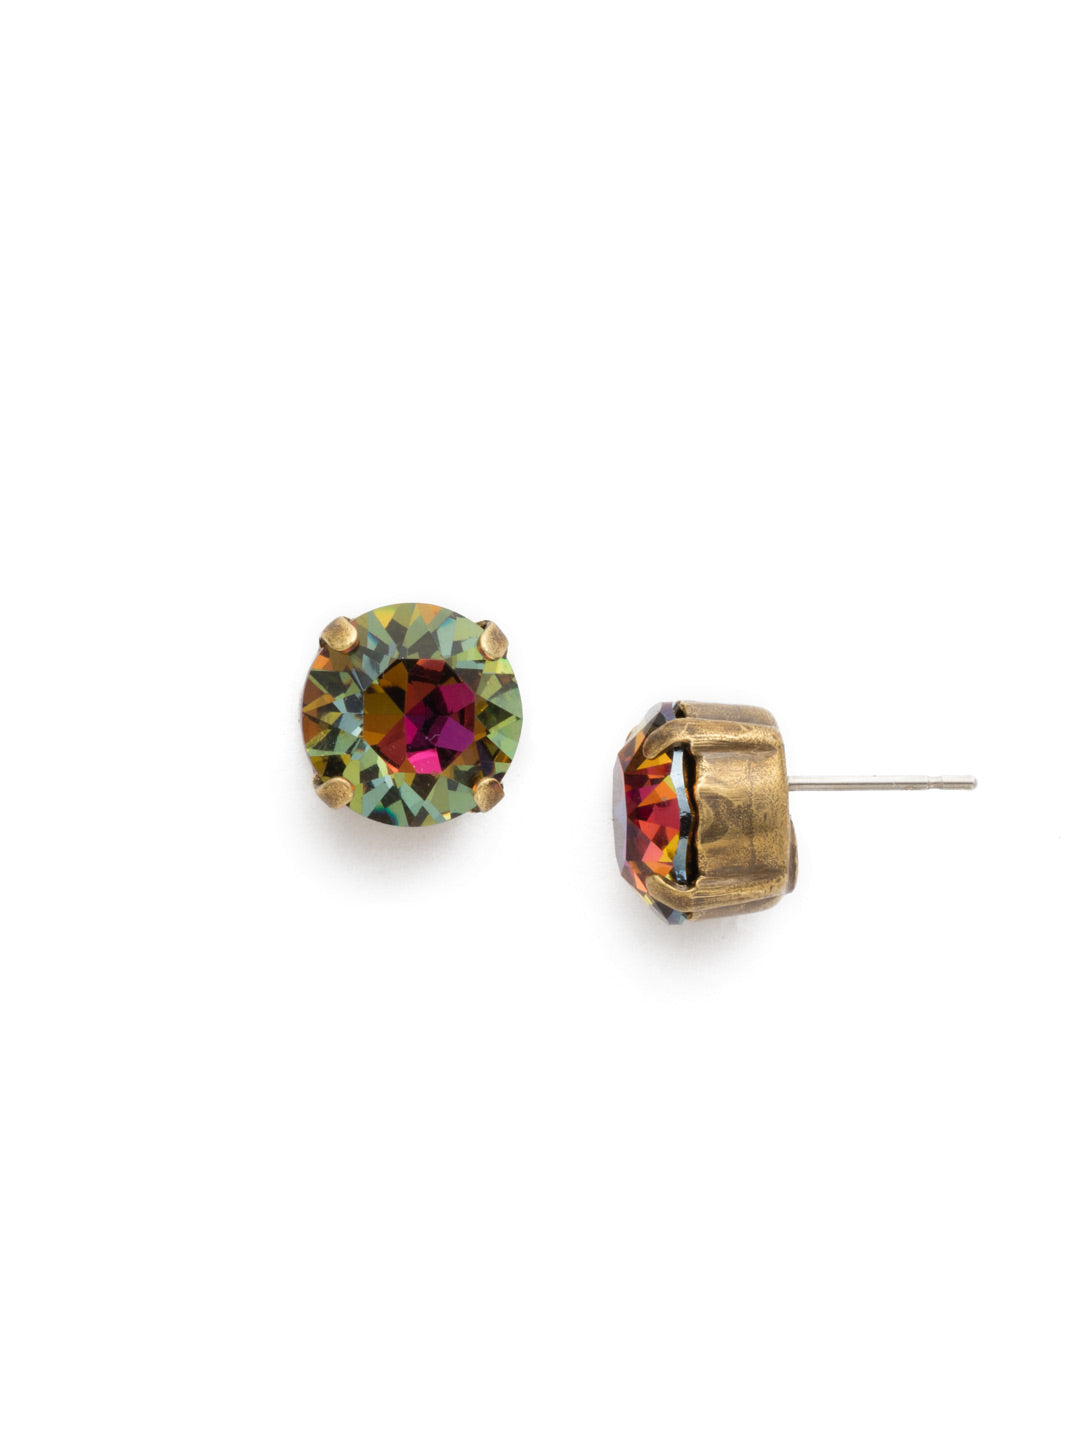 Round Crystal Stud Earrings - ECM14AGVO